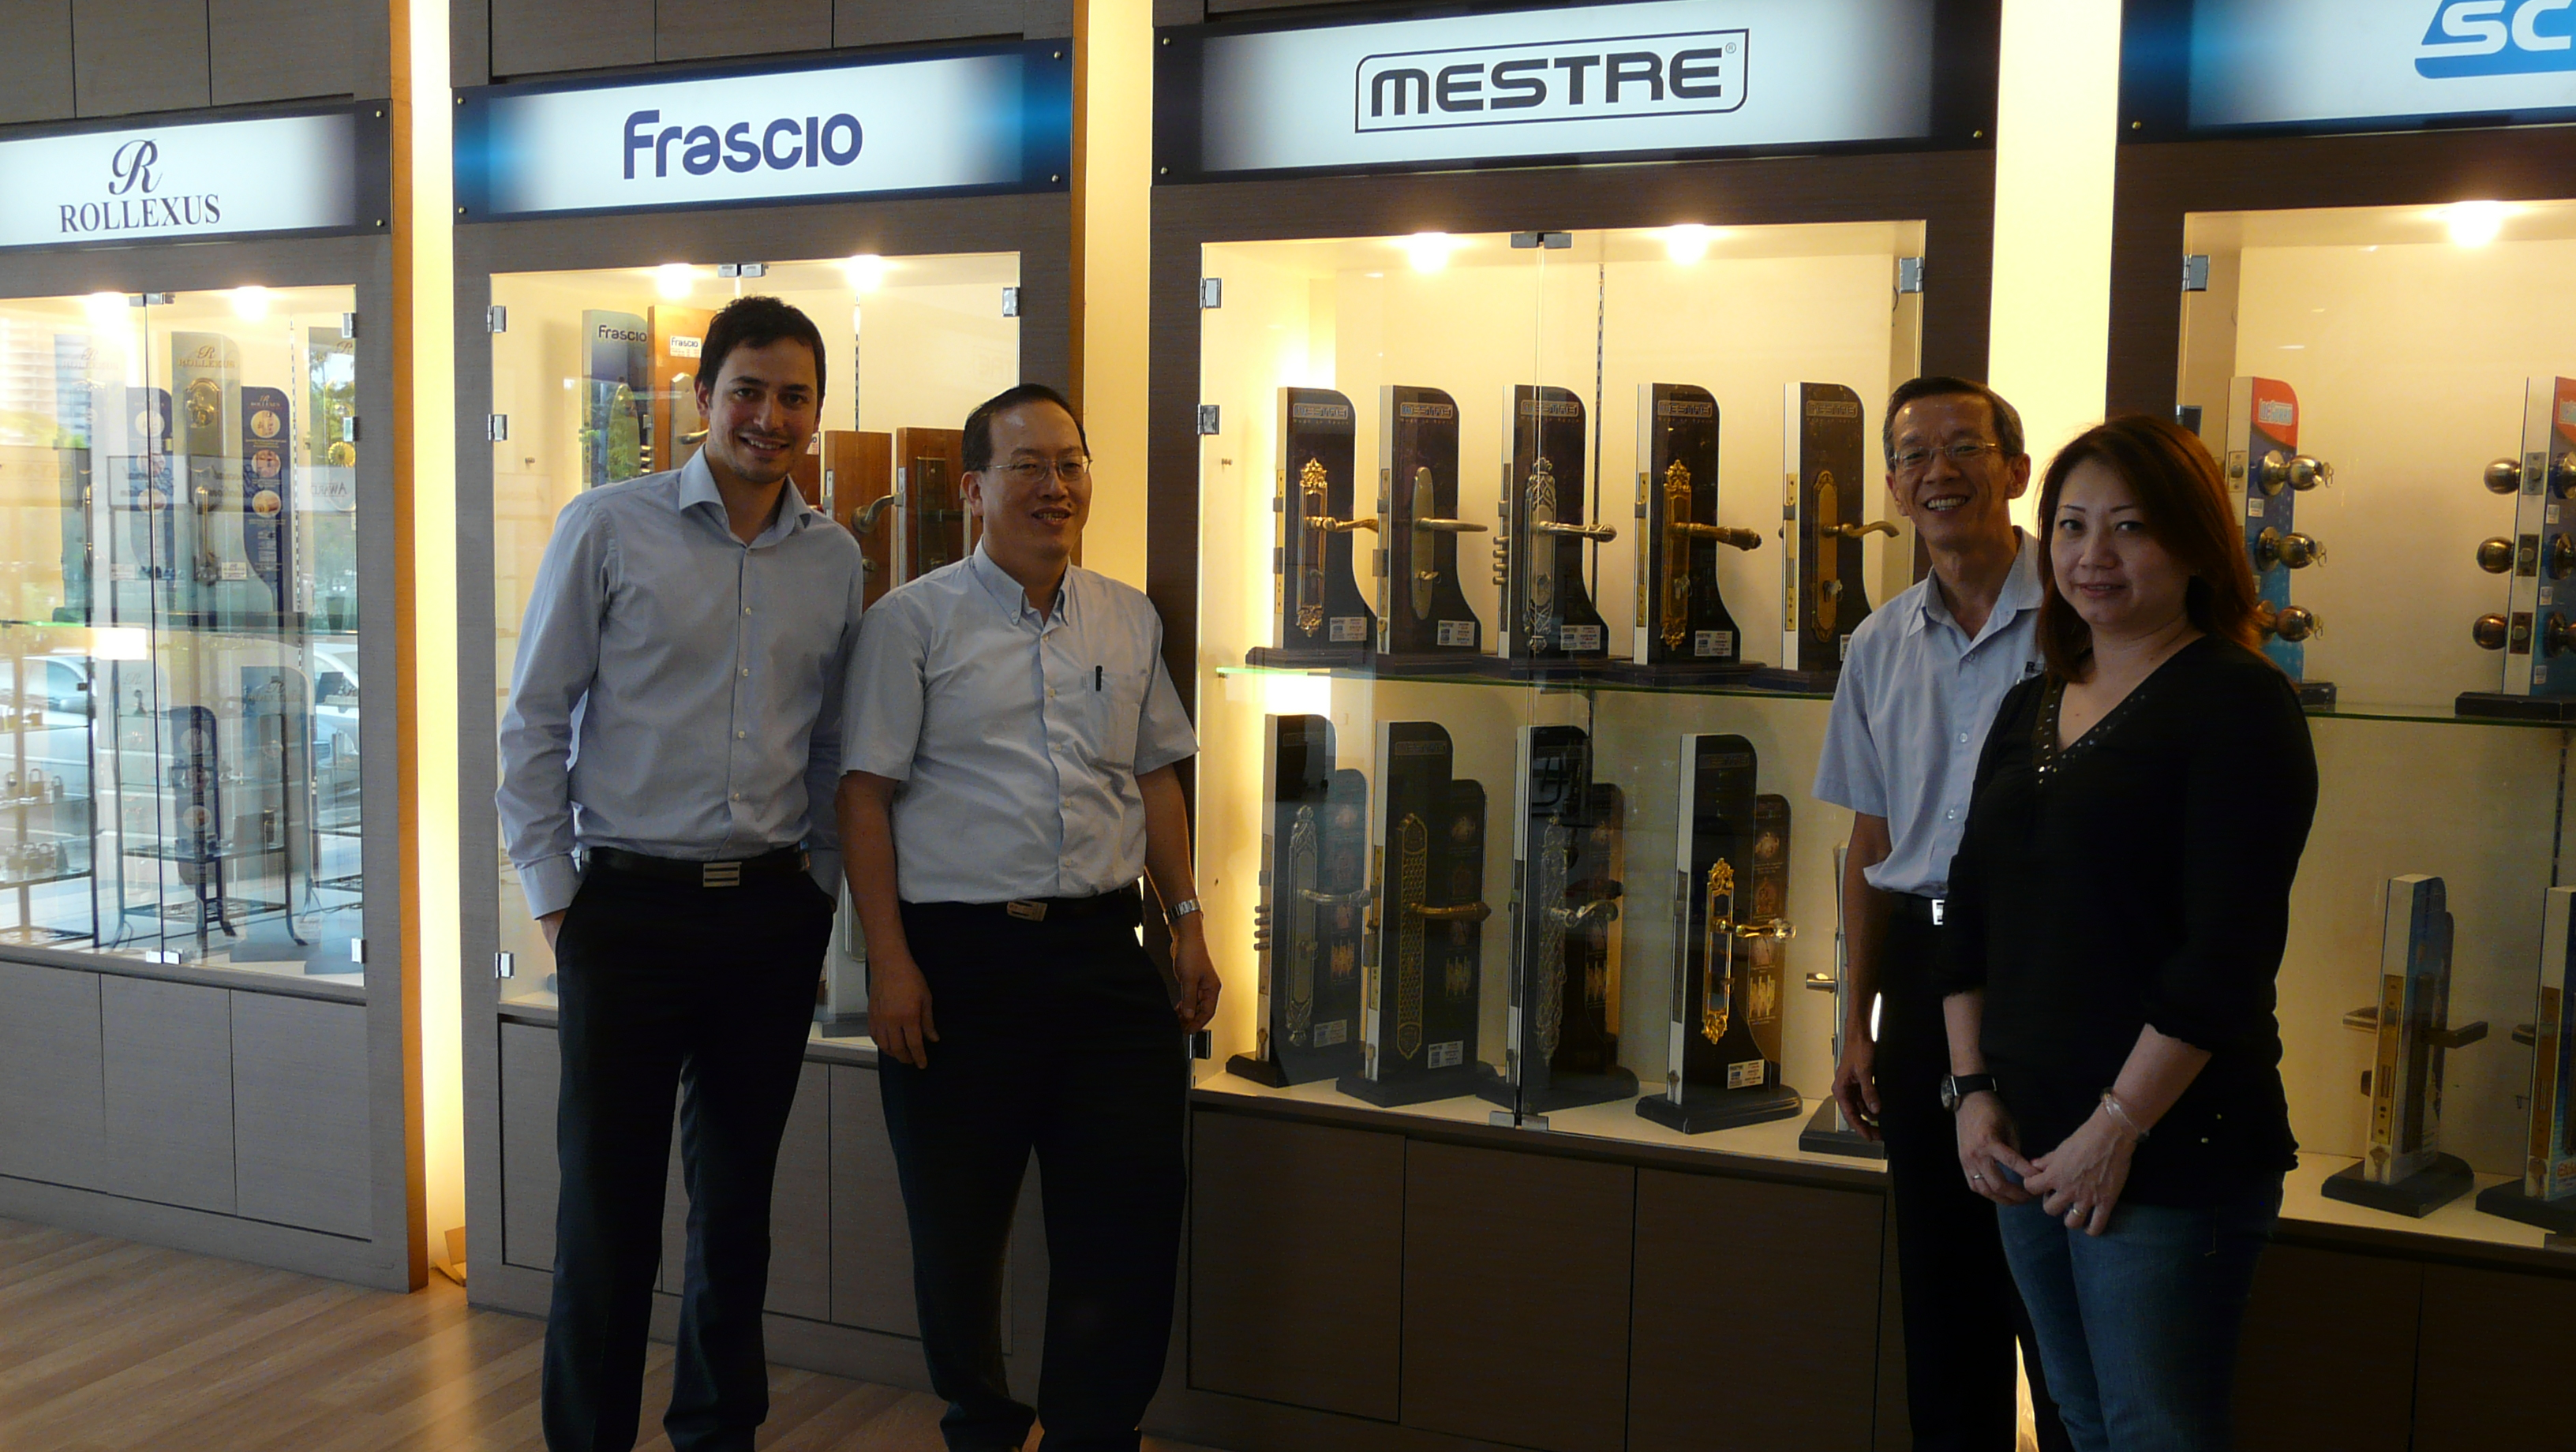 Bronces Mestre In Malaysia Mr Gaetano D Amico With Mr K